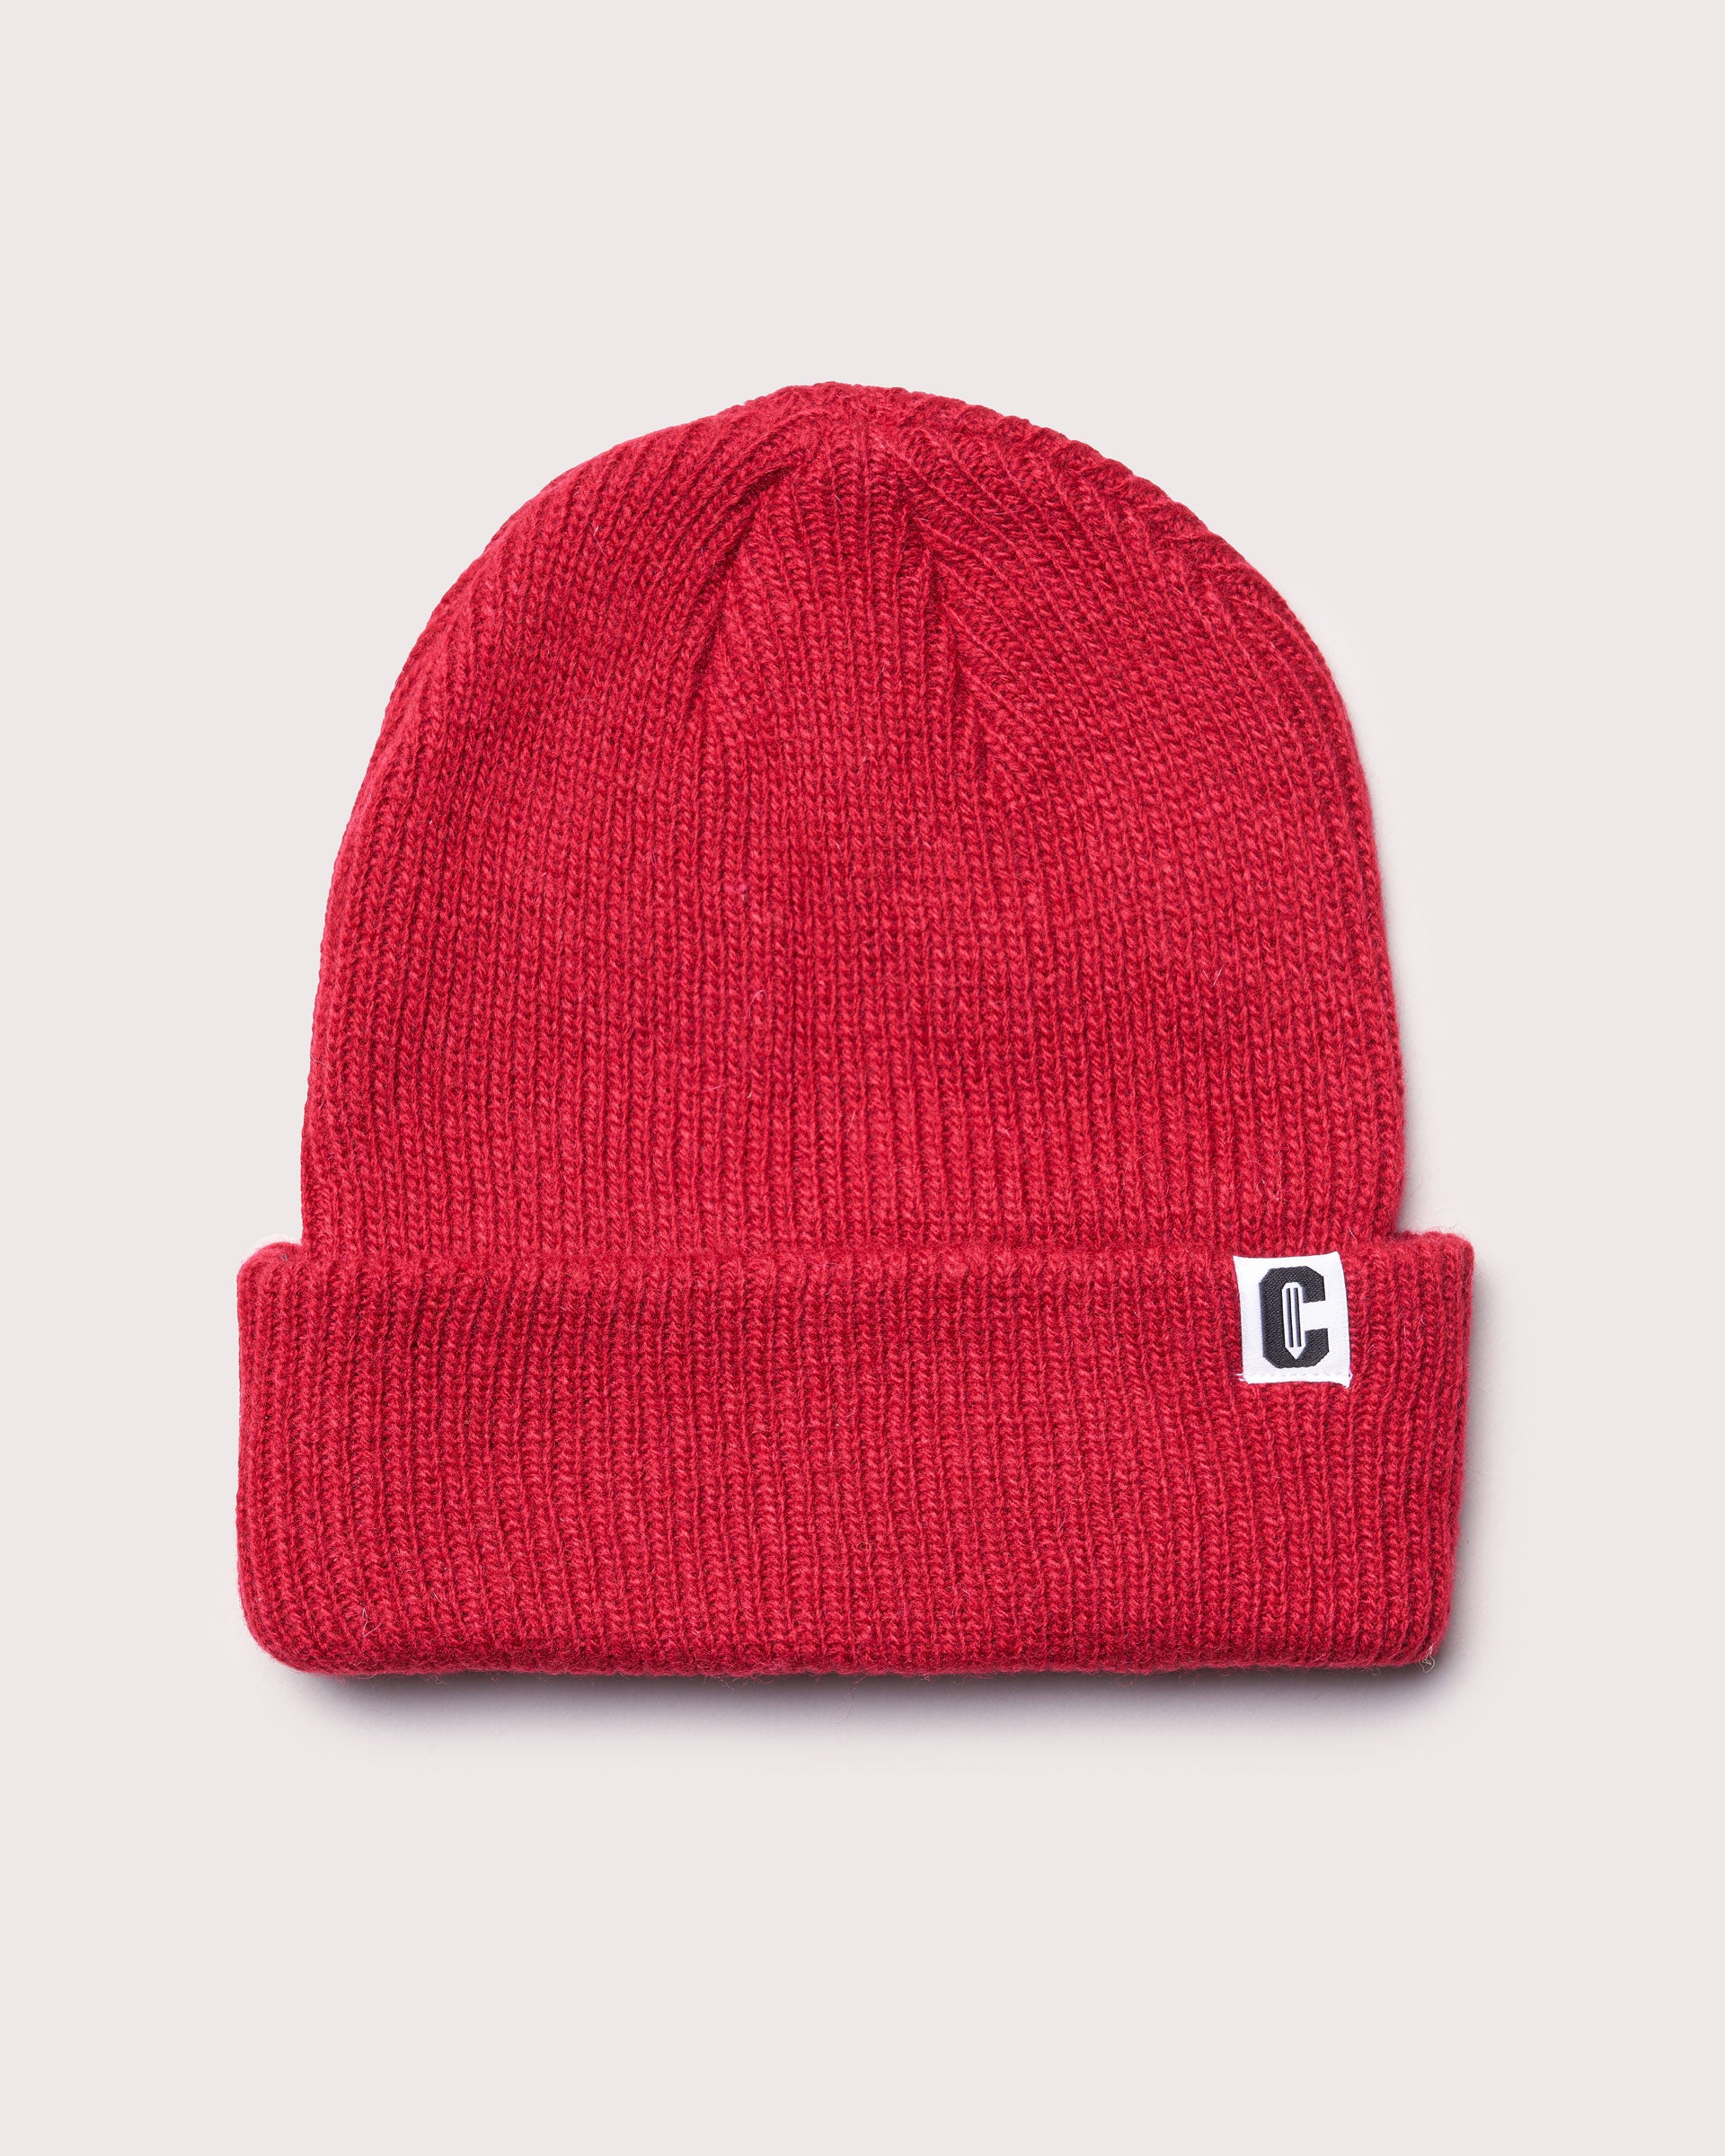 A red merino wool cuffed beanie with a woven label featuring the Coursework C logo.